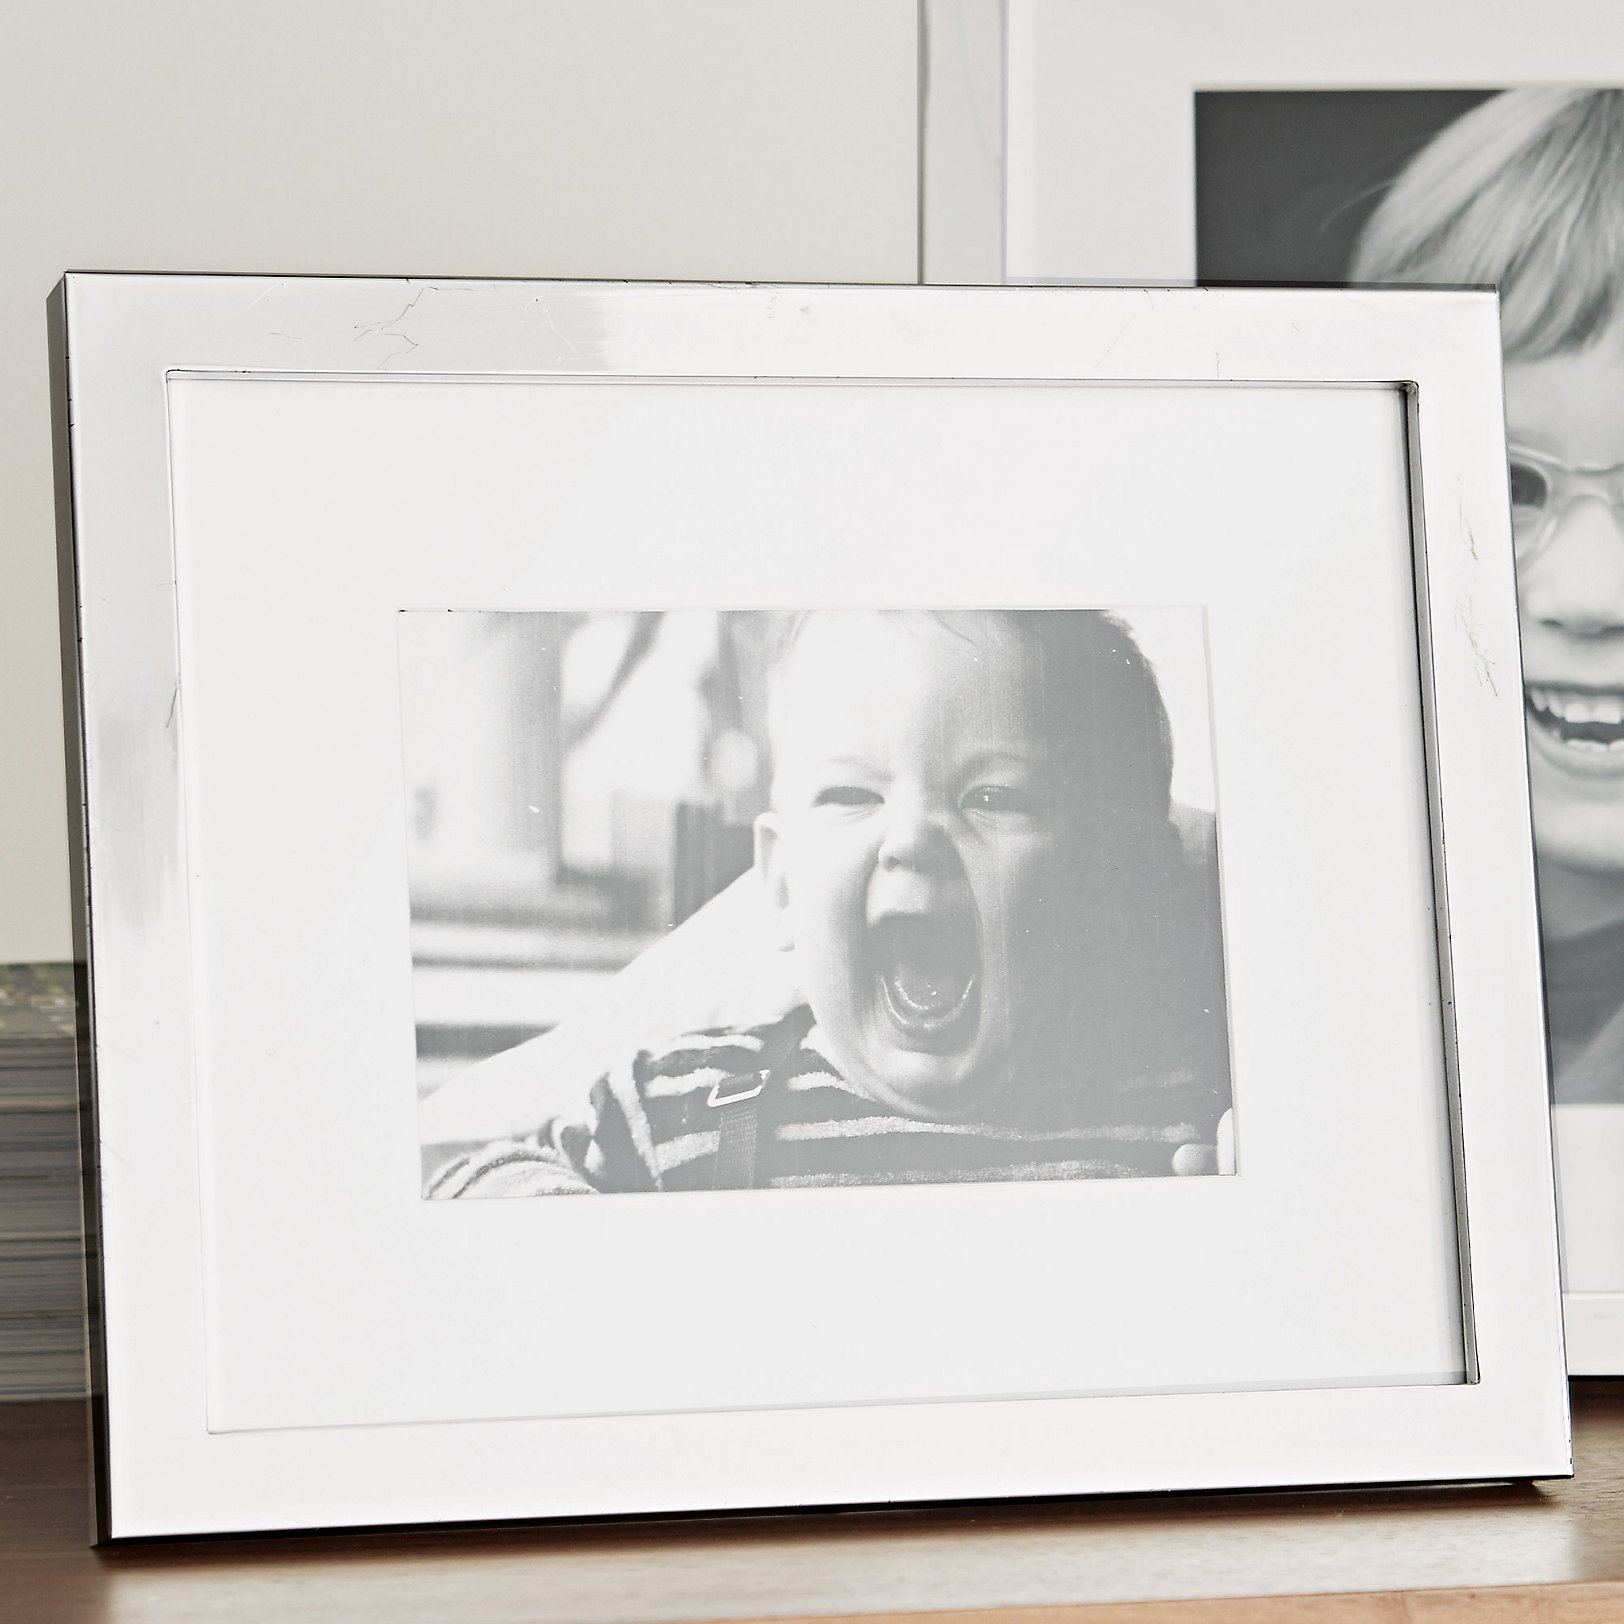 Terrific Gifts For Him  The White Company Uk With Gorgeous Classic Silver Photo Frame X With Easy On The Eye Drumoak Garden Centre Also Garden Privacy Fence Ideas In Addition Gardening Jobs In Suffolk And Garden Designers Kent As Well As Thames Garden Bridge Additionally Rats Nest In Garden From Thewhitecompanycom With   Gorgeous Gifts For Him  The White Company Uk With Easy On The Eye Classic Silver Photo Frame X And Terrific Drumoak Garden Centre Also Garden Privacy Fence Ideas In Addition Gardening Jobs In Suffolk From Thewhitecompanycom